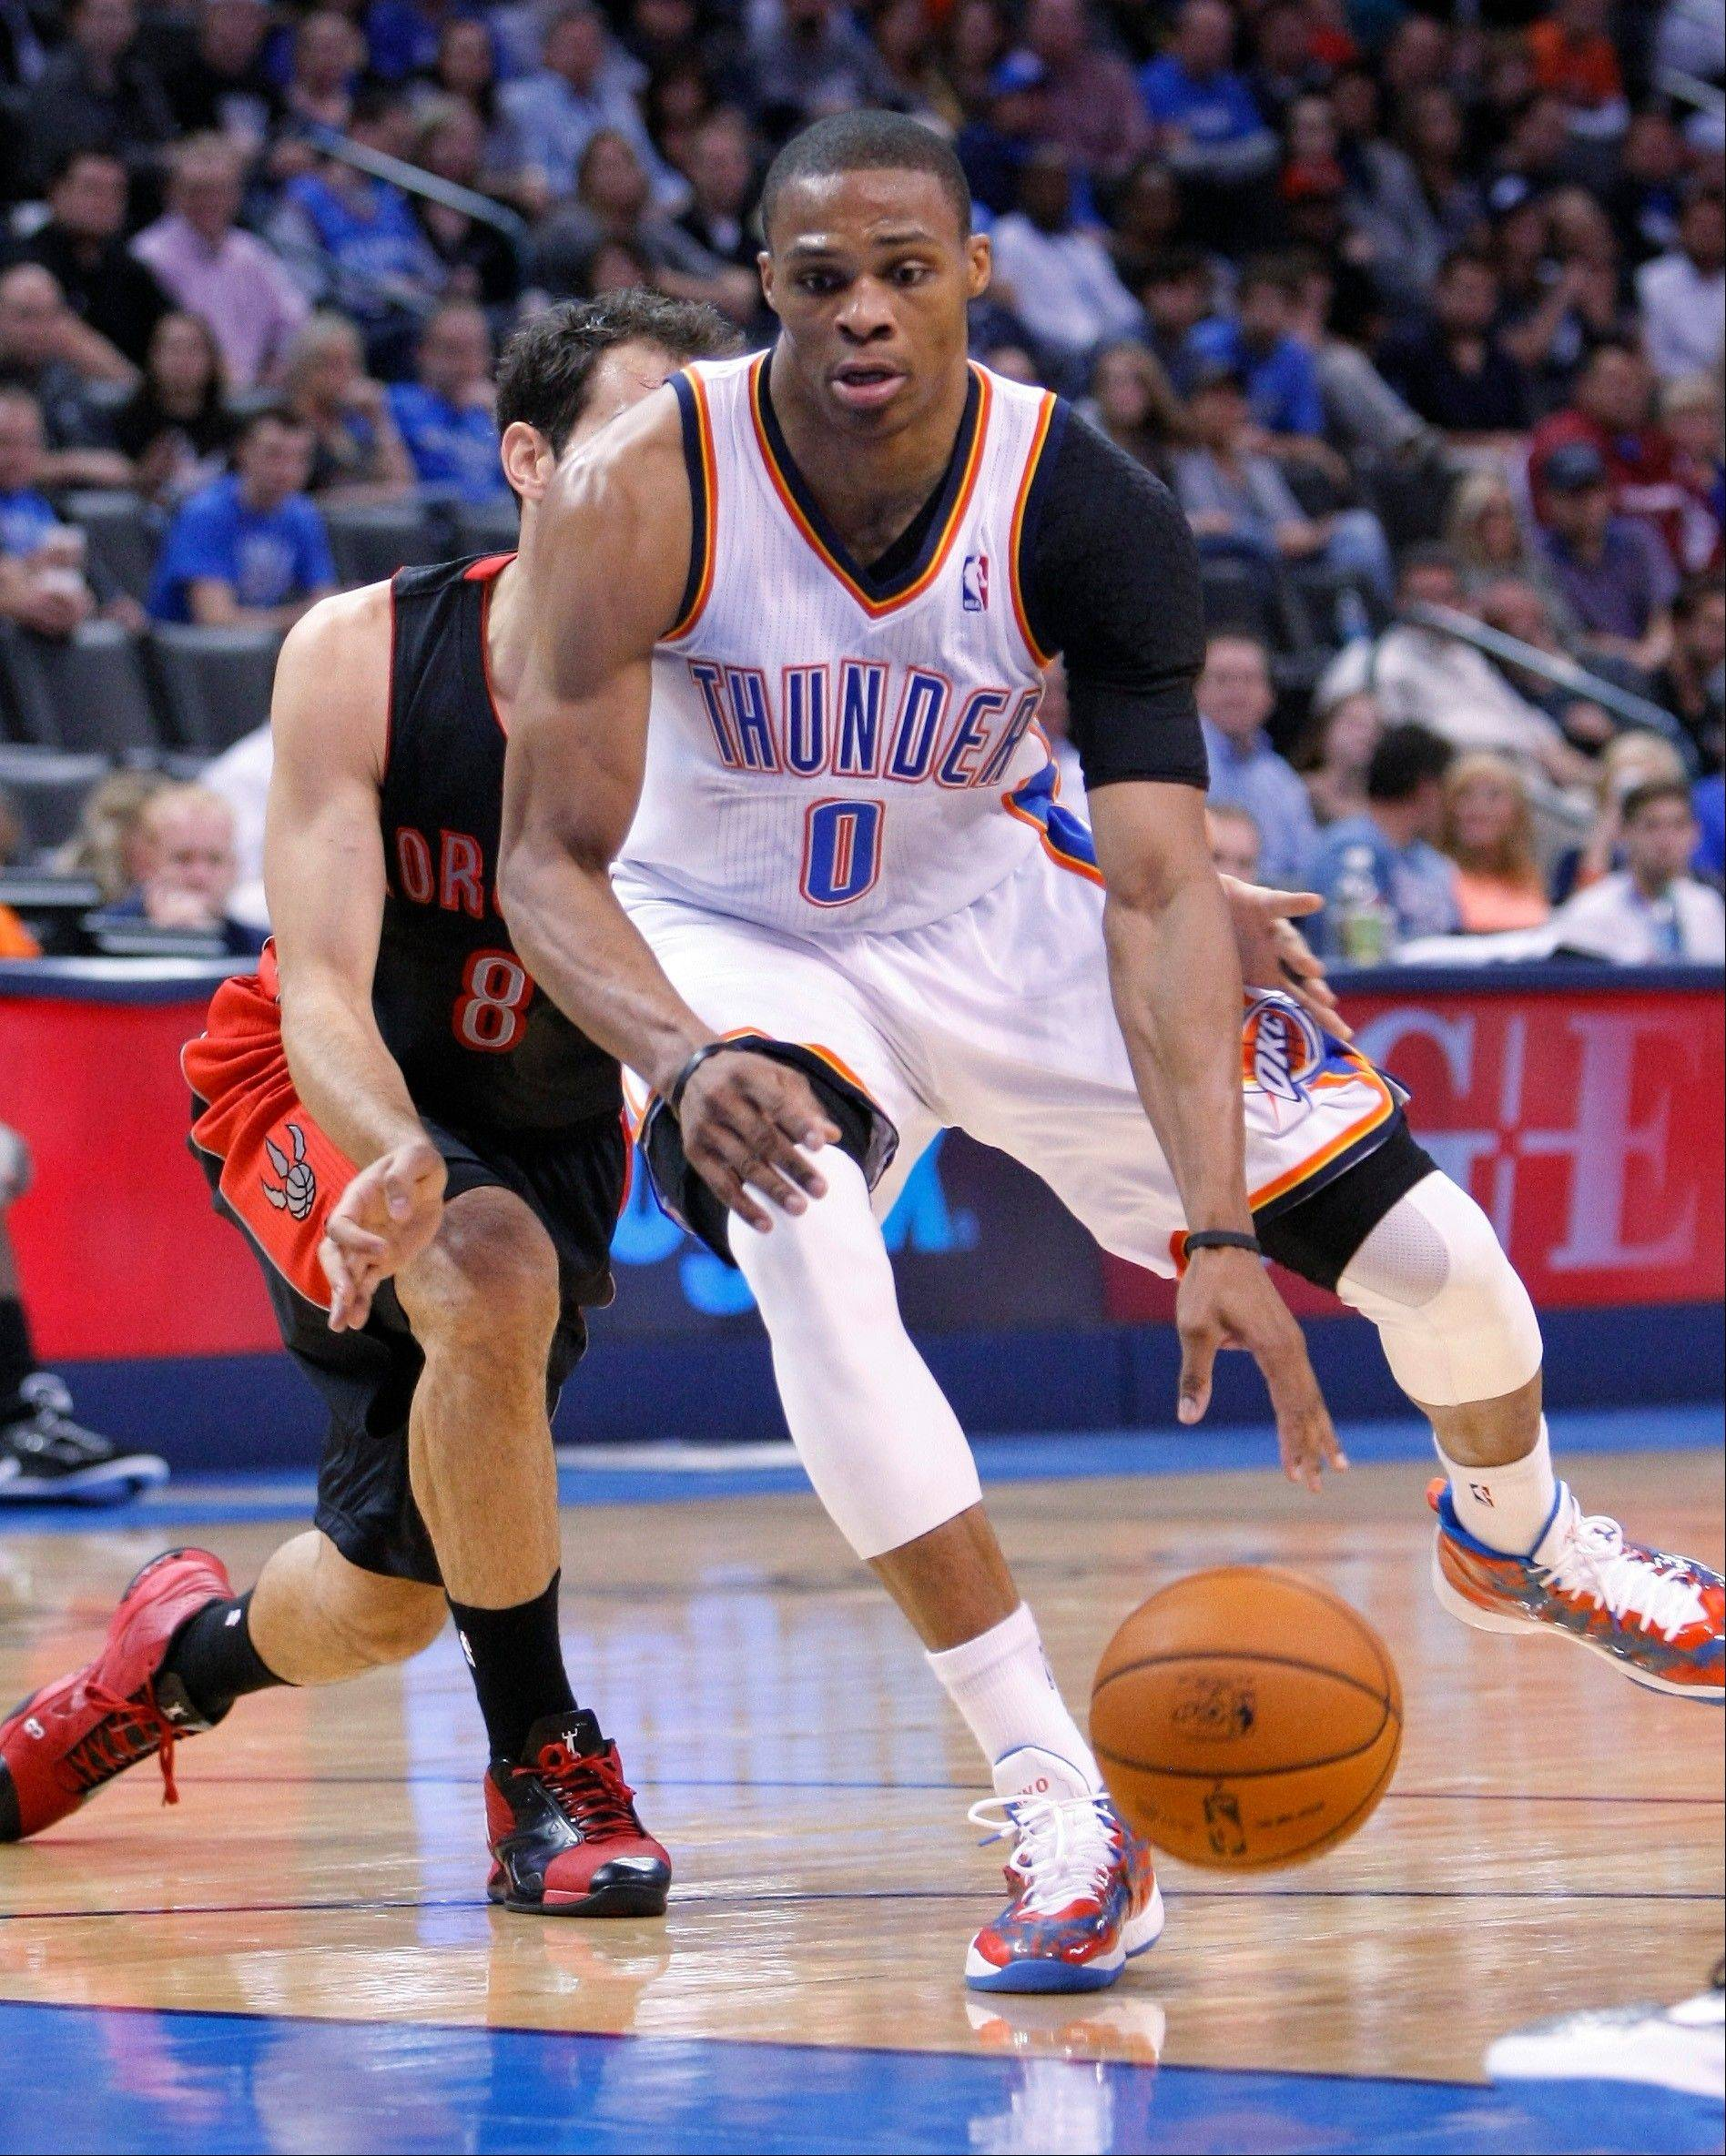 Oklahoma City Thunder guard Russell Westbrook (0) drives to the basket in front of Toronto Raptors guard Jose Calderon during the third quarter of an NBA basketball game in Oklahoma City, Tuesday, Nov. 6, 2012. Oklahoma City won 108-88. (AP Photo/Alonzo Adams)